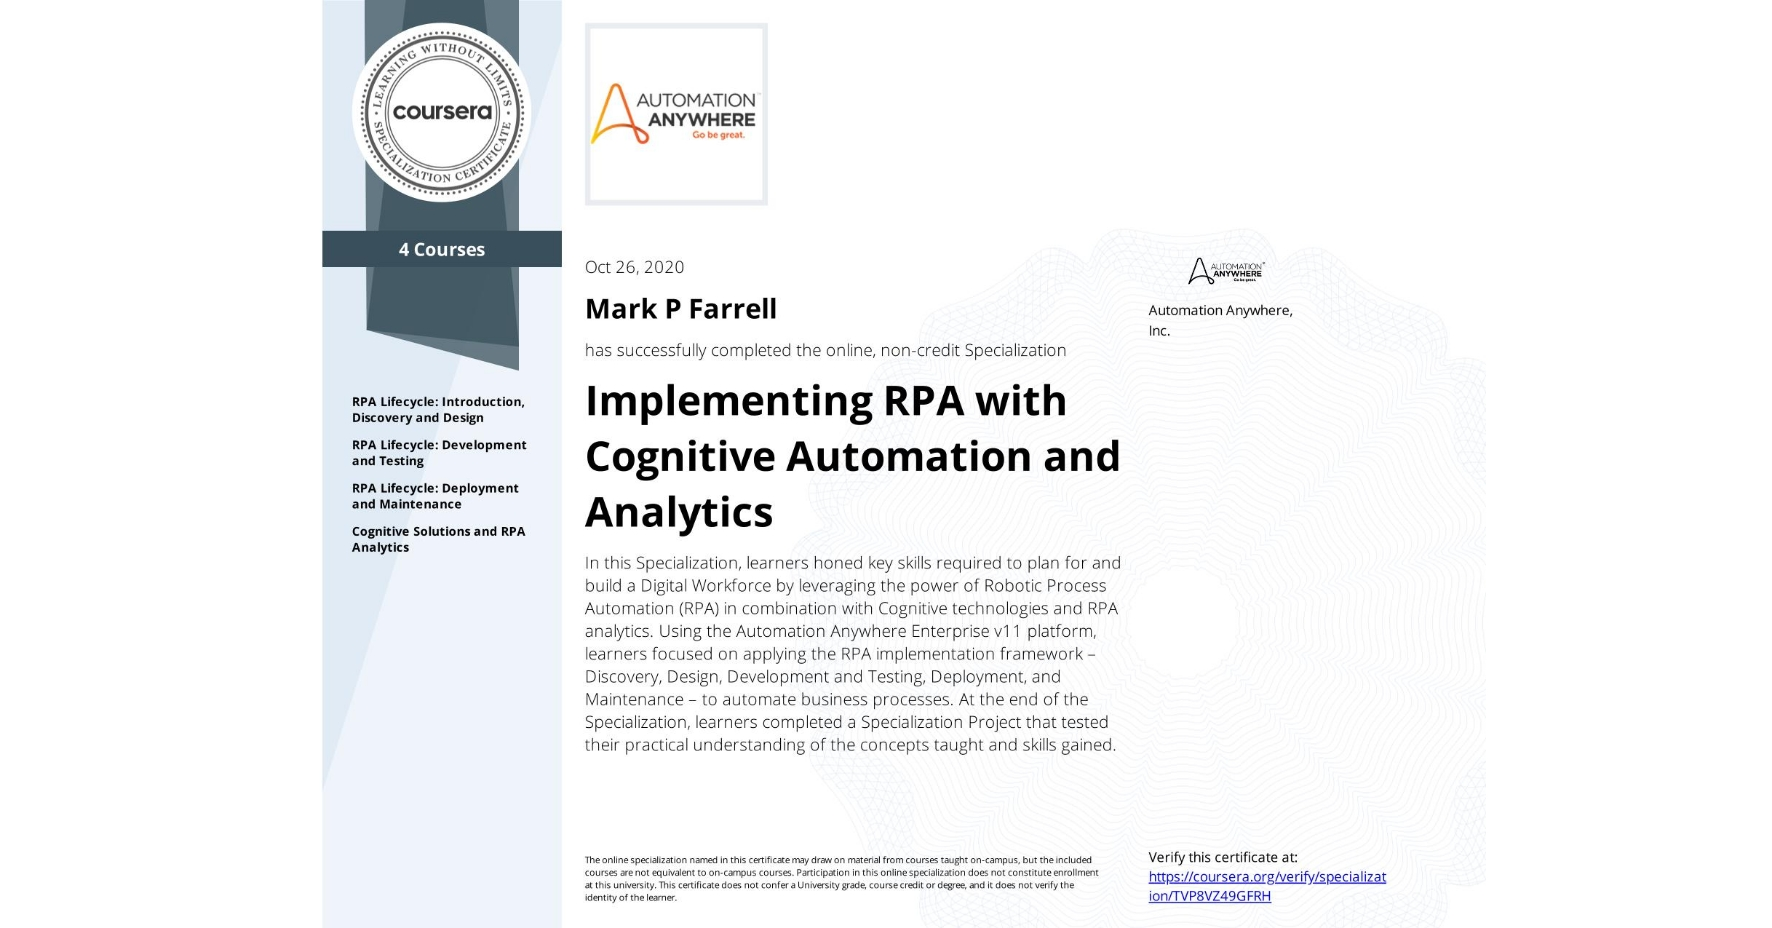 View certificate for Mark P Farrell, Implementing RPA with Cognitive Automation and Analytics, offered through Coursera. In this Specialization, learners honed key skills required to plan for and build a Digital Workforce by leveraging the power of Robotic Process Automation (RPA) in combination with Cognitive technologies and RPA analytics. Using the Automation Anywhere Enterprise v11 platform, learners focused on applying the RPA implementation framework – Discovery, Design, Development and Testing, Deployment, and Maintenance – to automate business processes. At the end of the Specialization, learners completed a Specialization Project that tested their practical understanding of the concepts taught and skills gained.